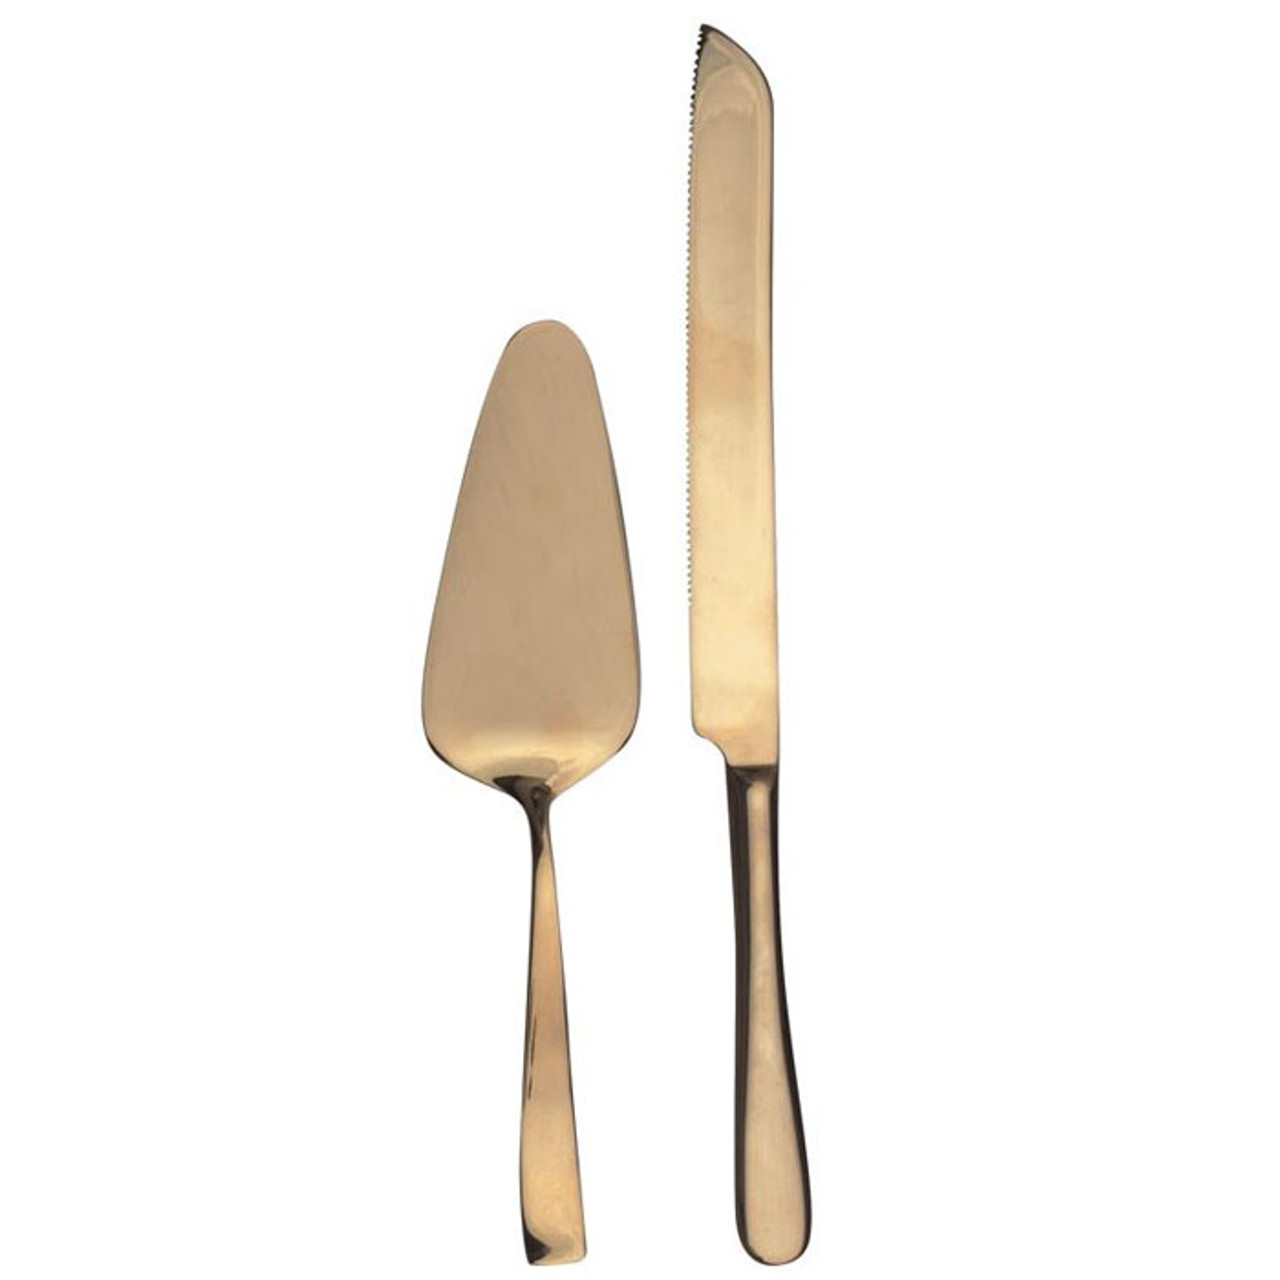 Cake Serving Set - Gold Finish, Set of 2